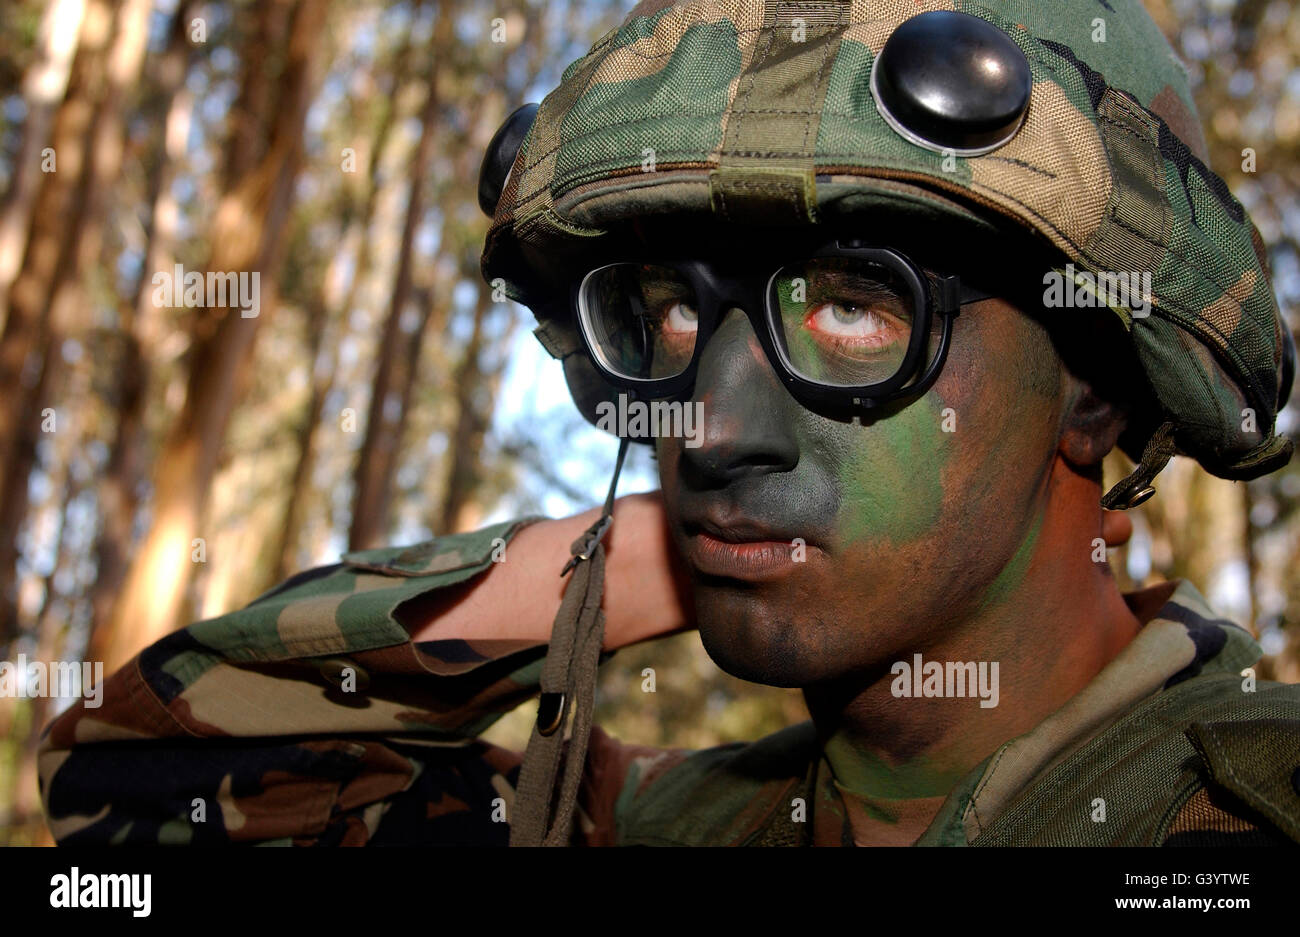 Airman applies camouflage make-up. - Stock Image